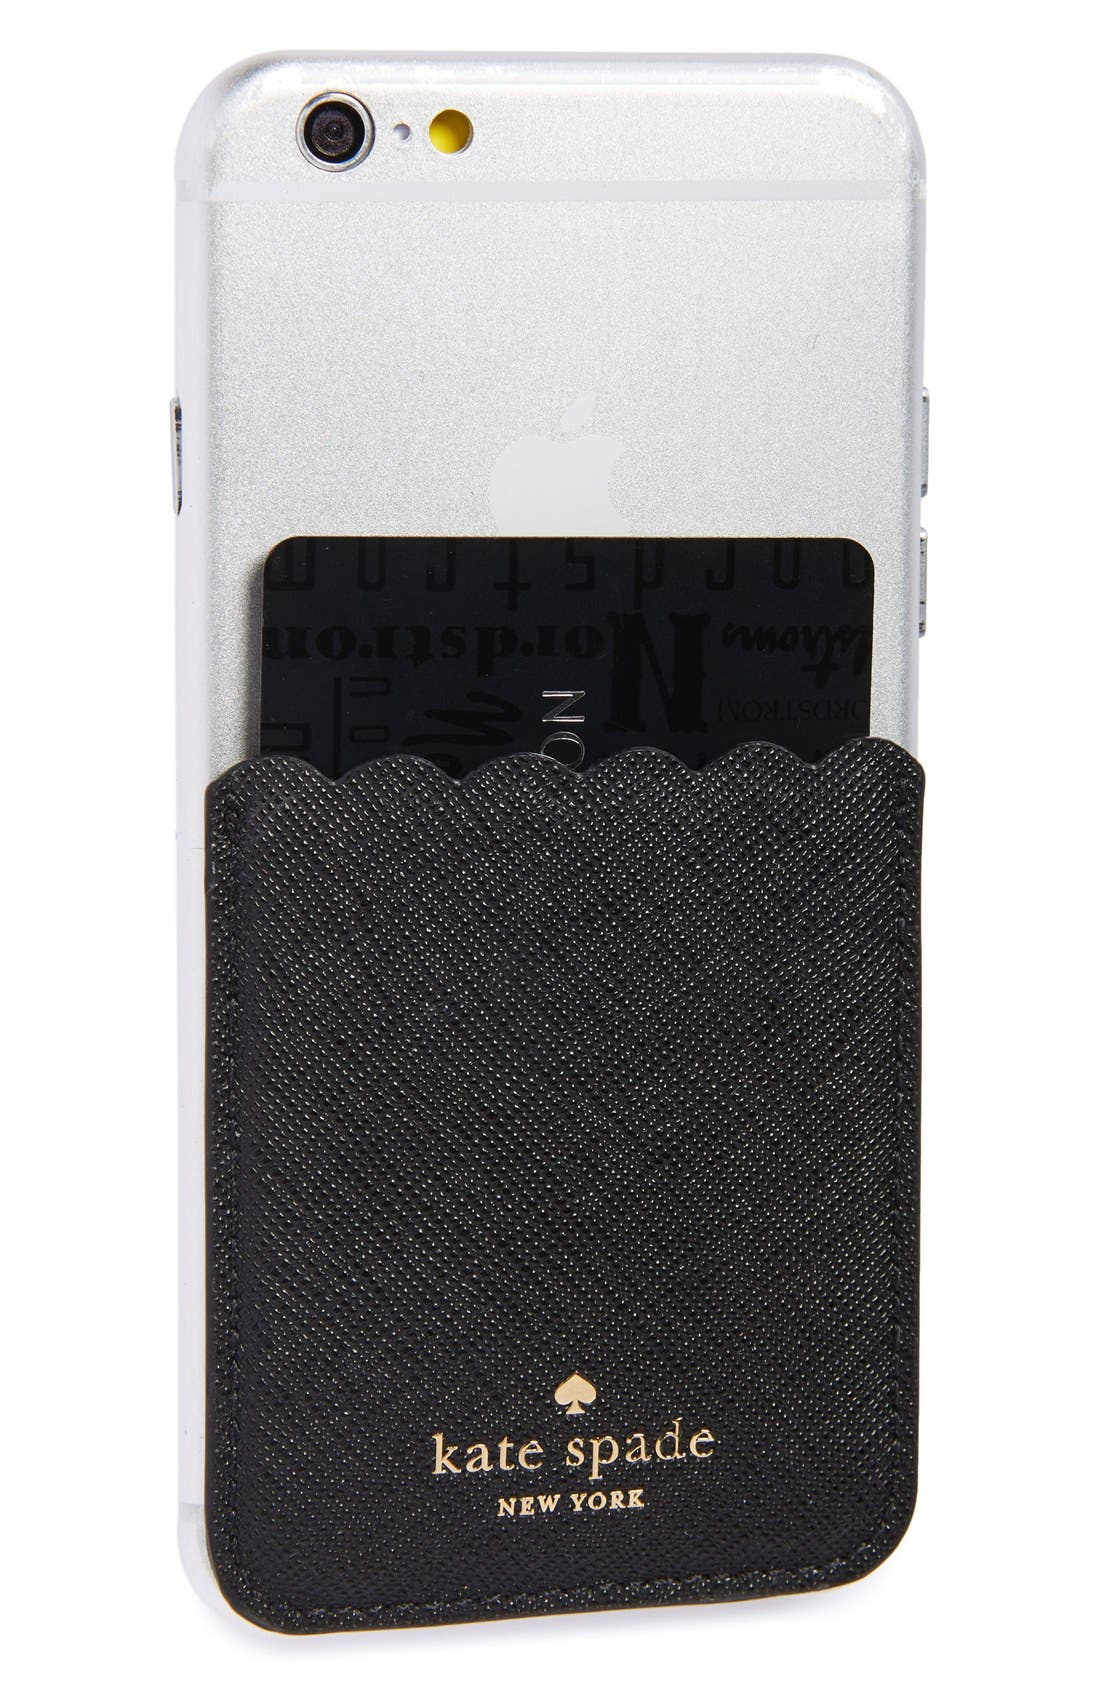 KATE SPADE NEW YORK scallop leather stick-on smartphone